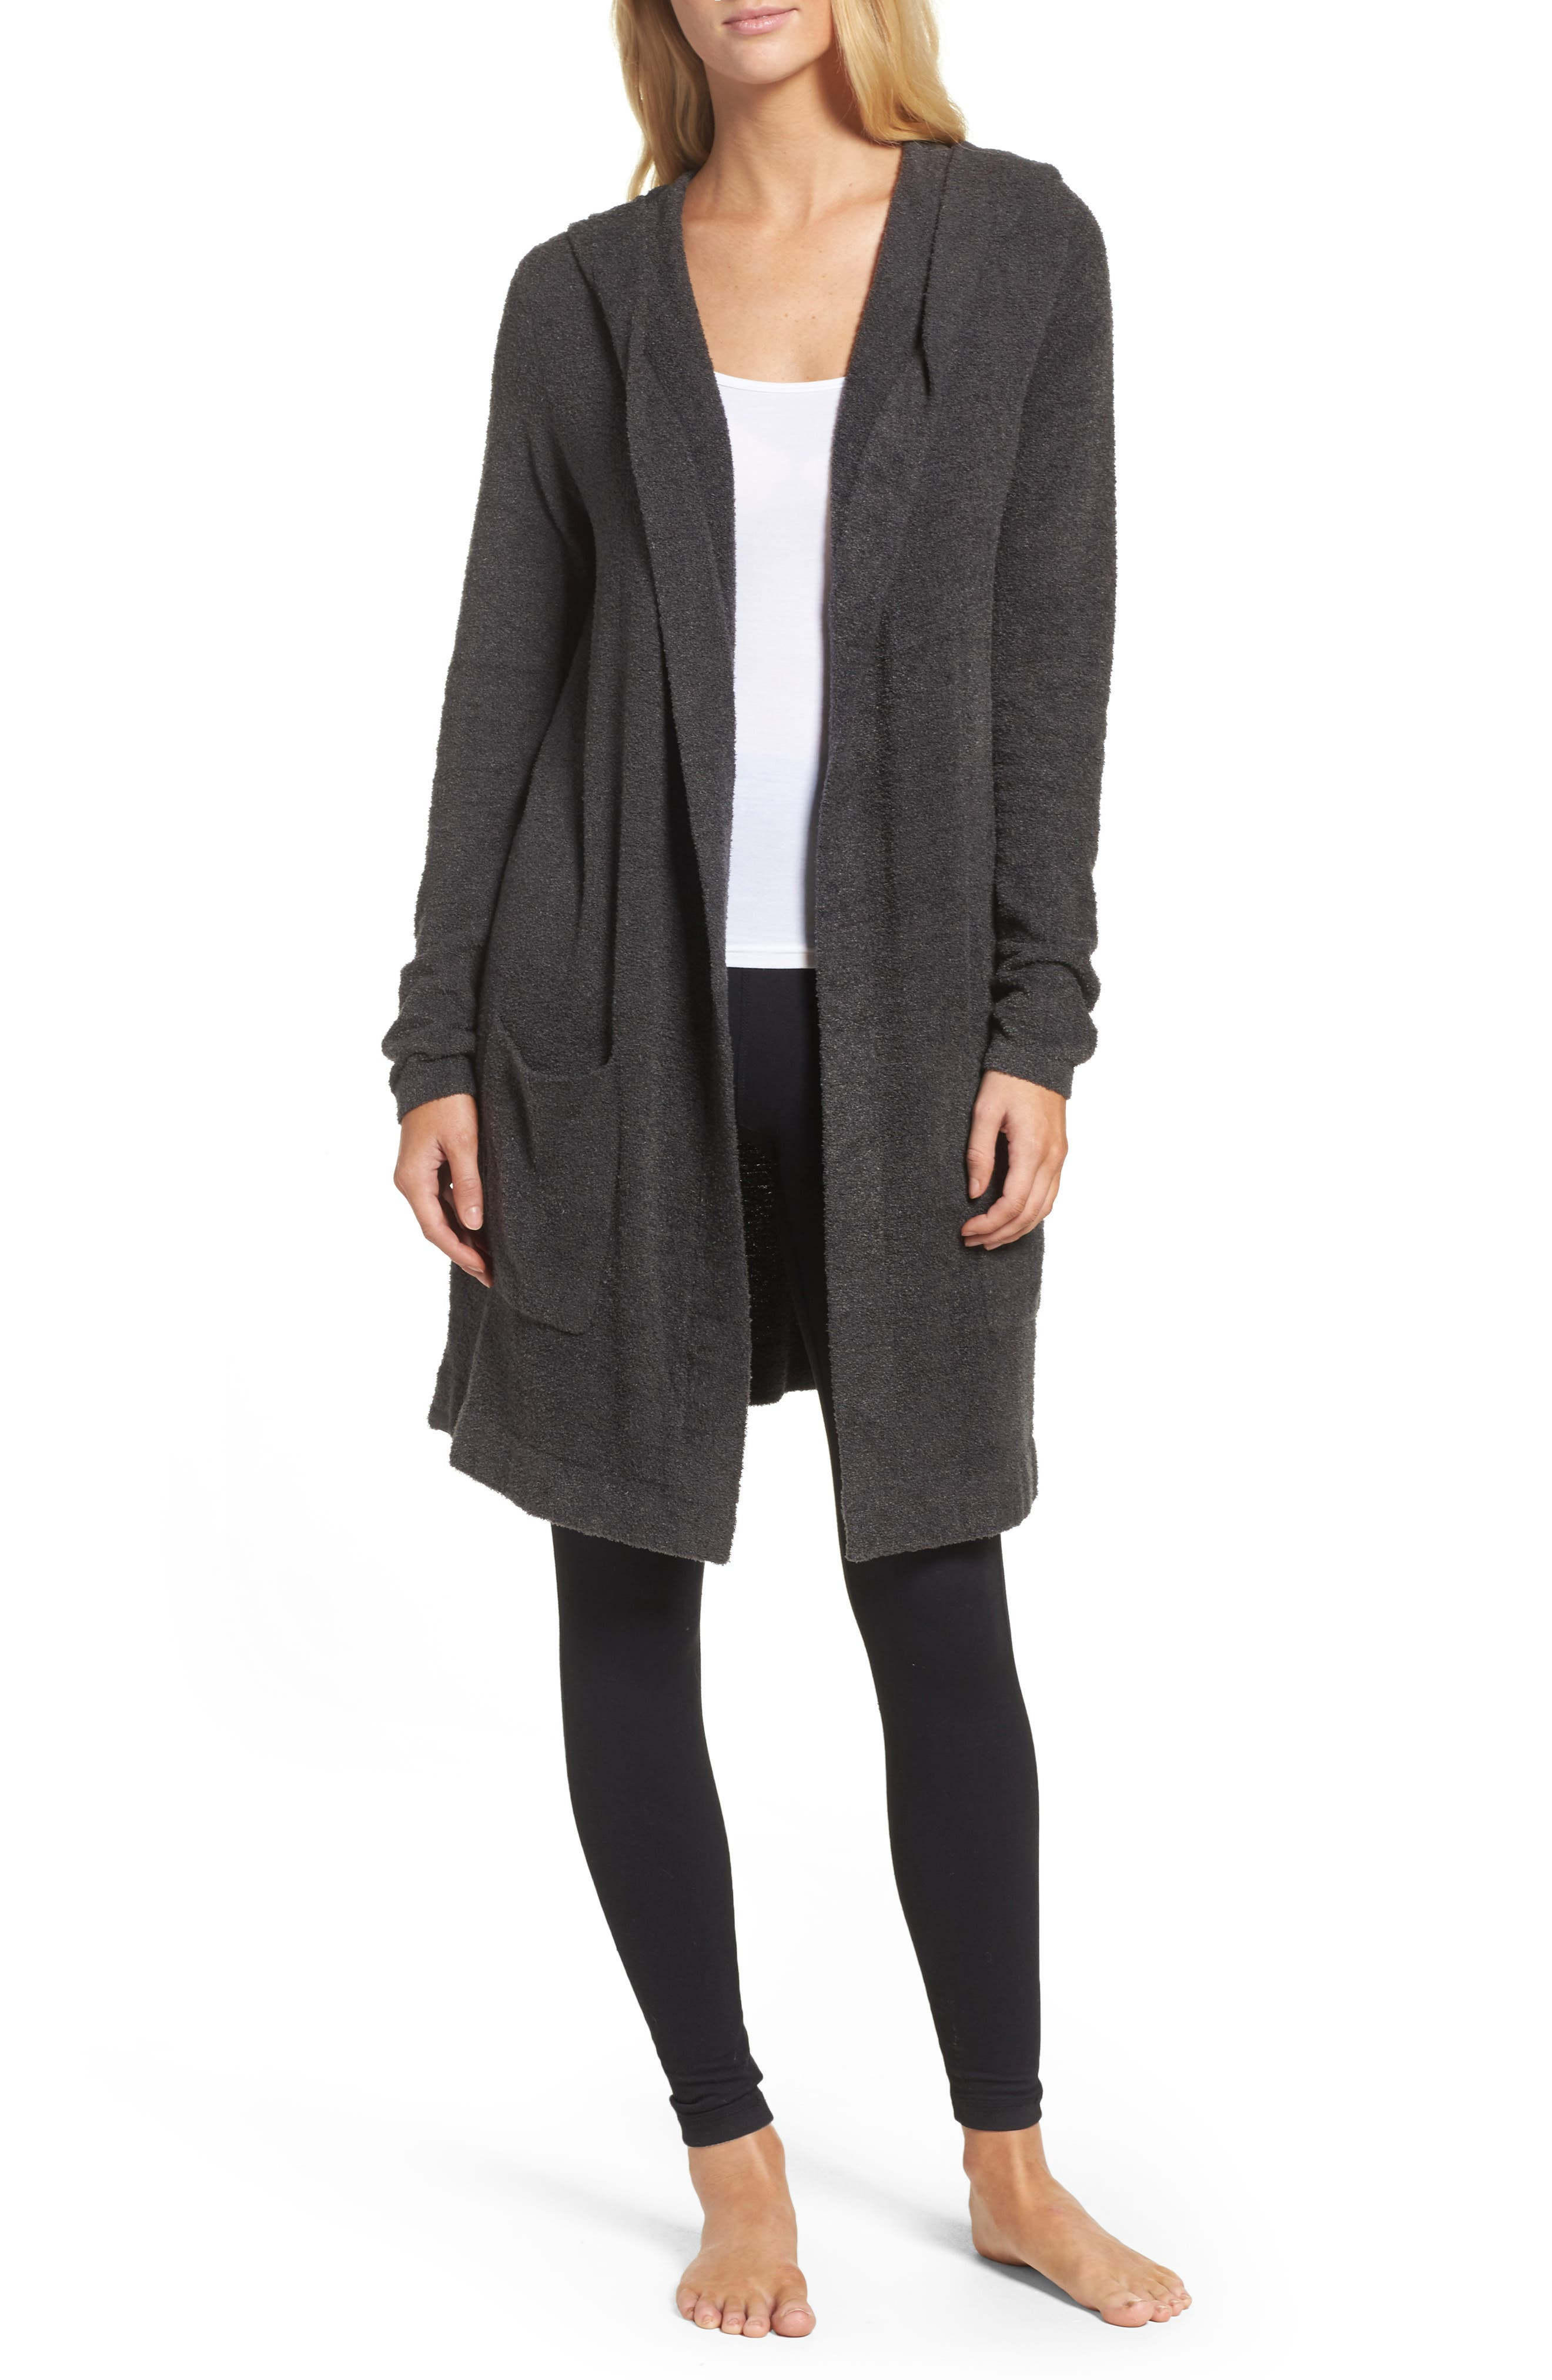 Cozychic Lite<sup>®</sup> Coastal Hooded Cardigan,                             Main thumbnail 1, color,                             Carbon